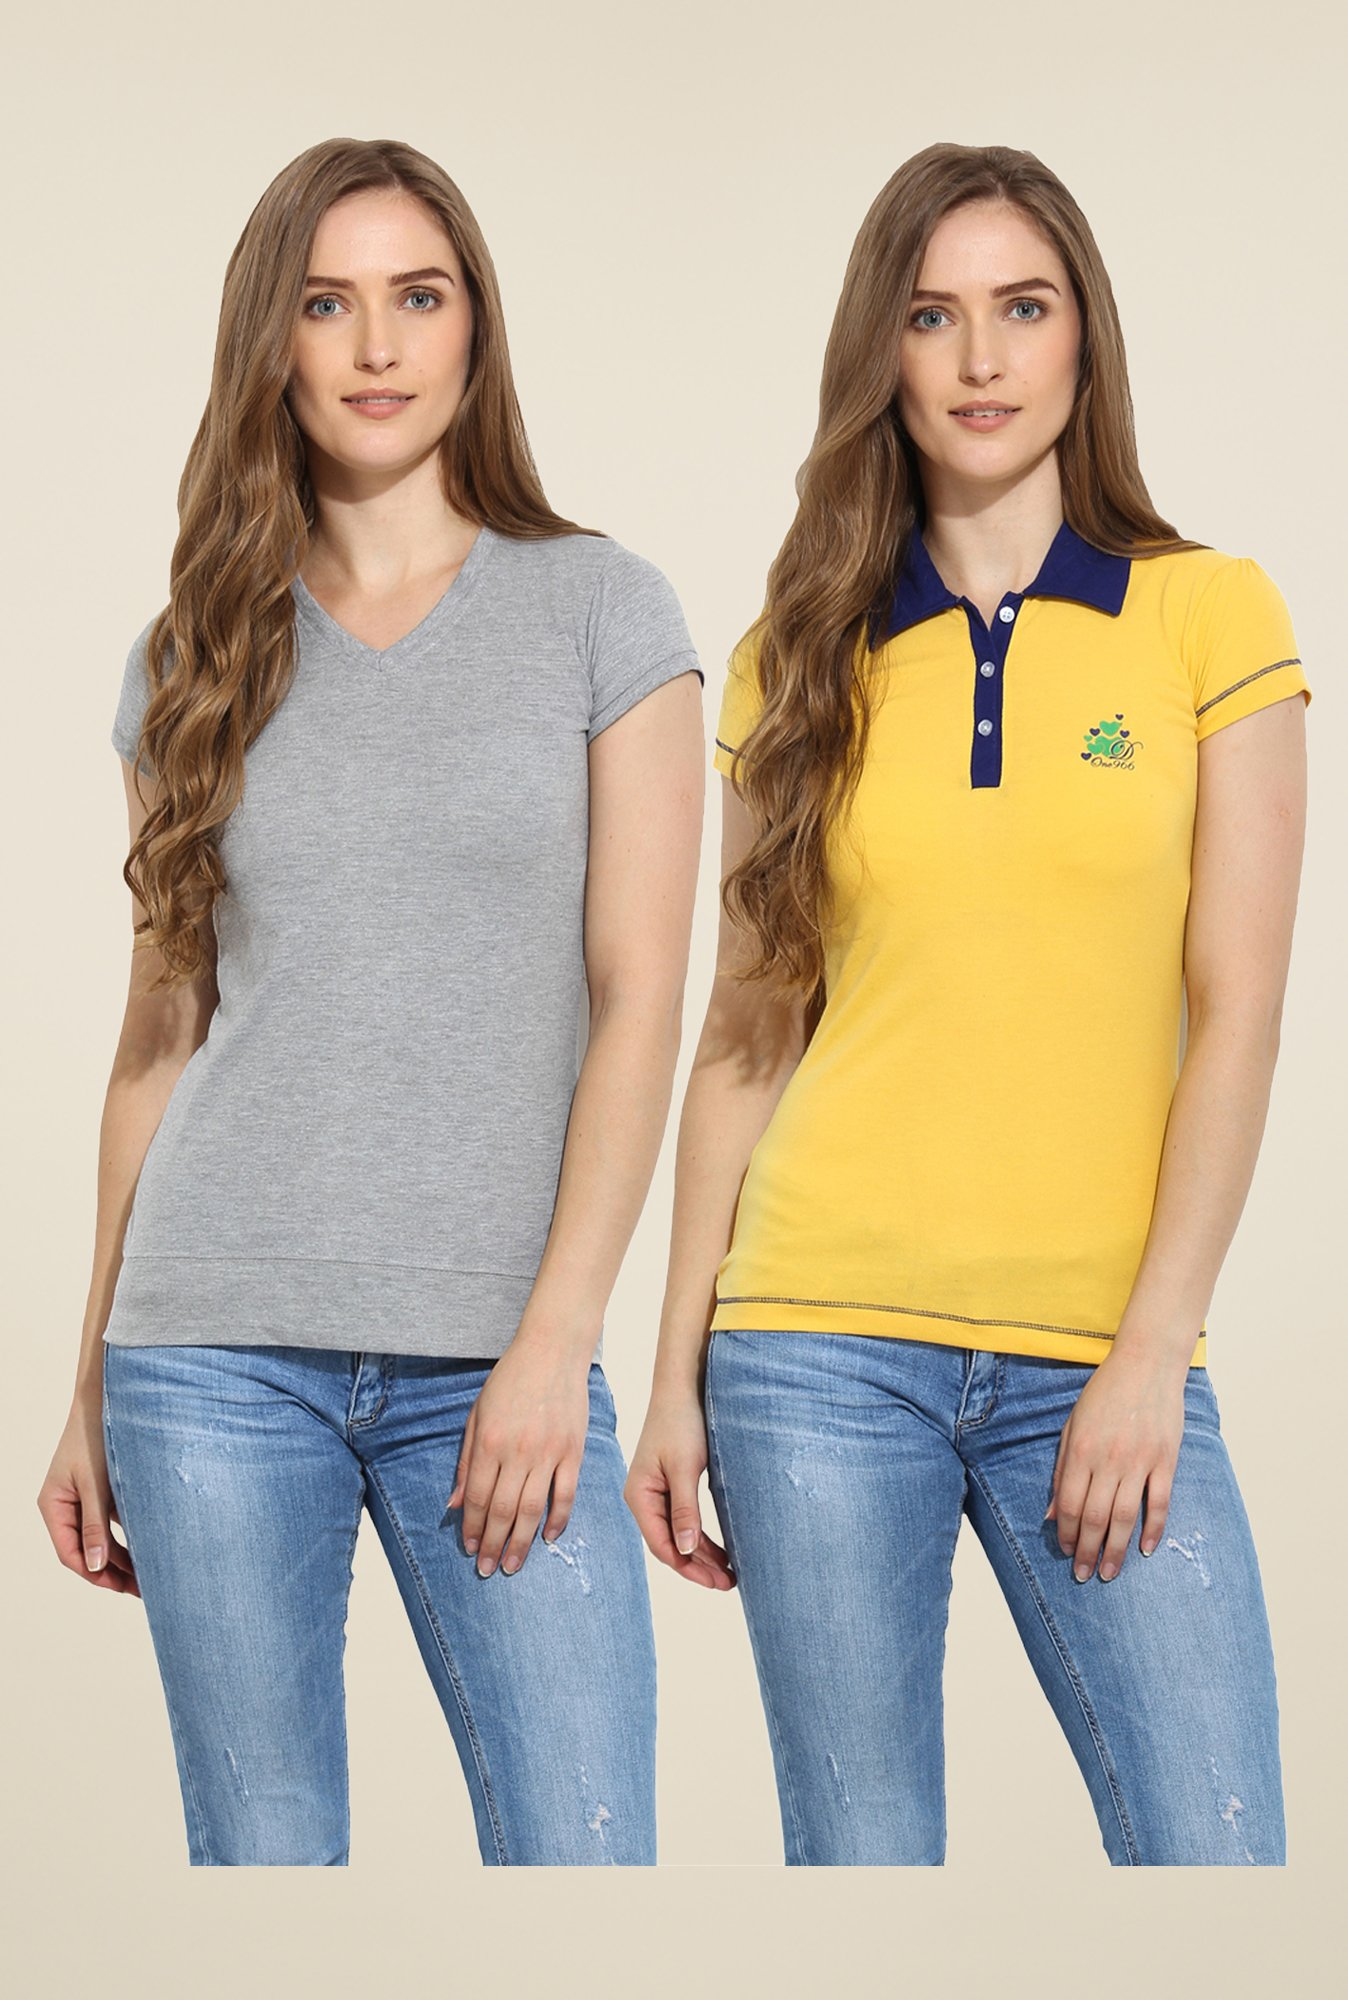 Duke Stardust Grey & Yellow Solid T Shirt (Pack of 2)